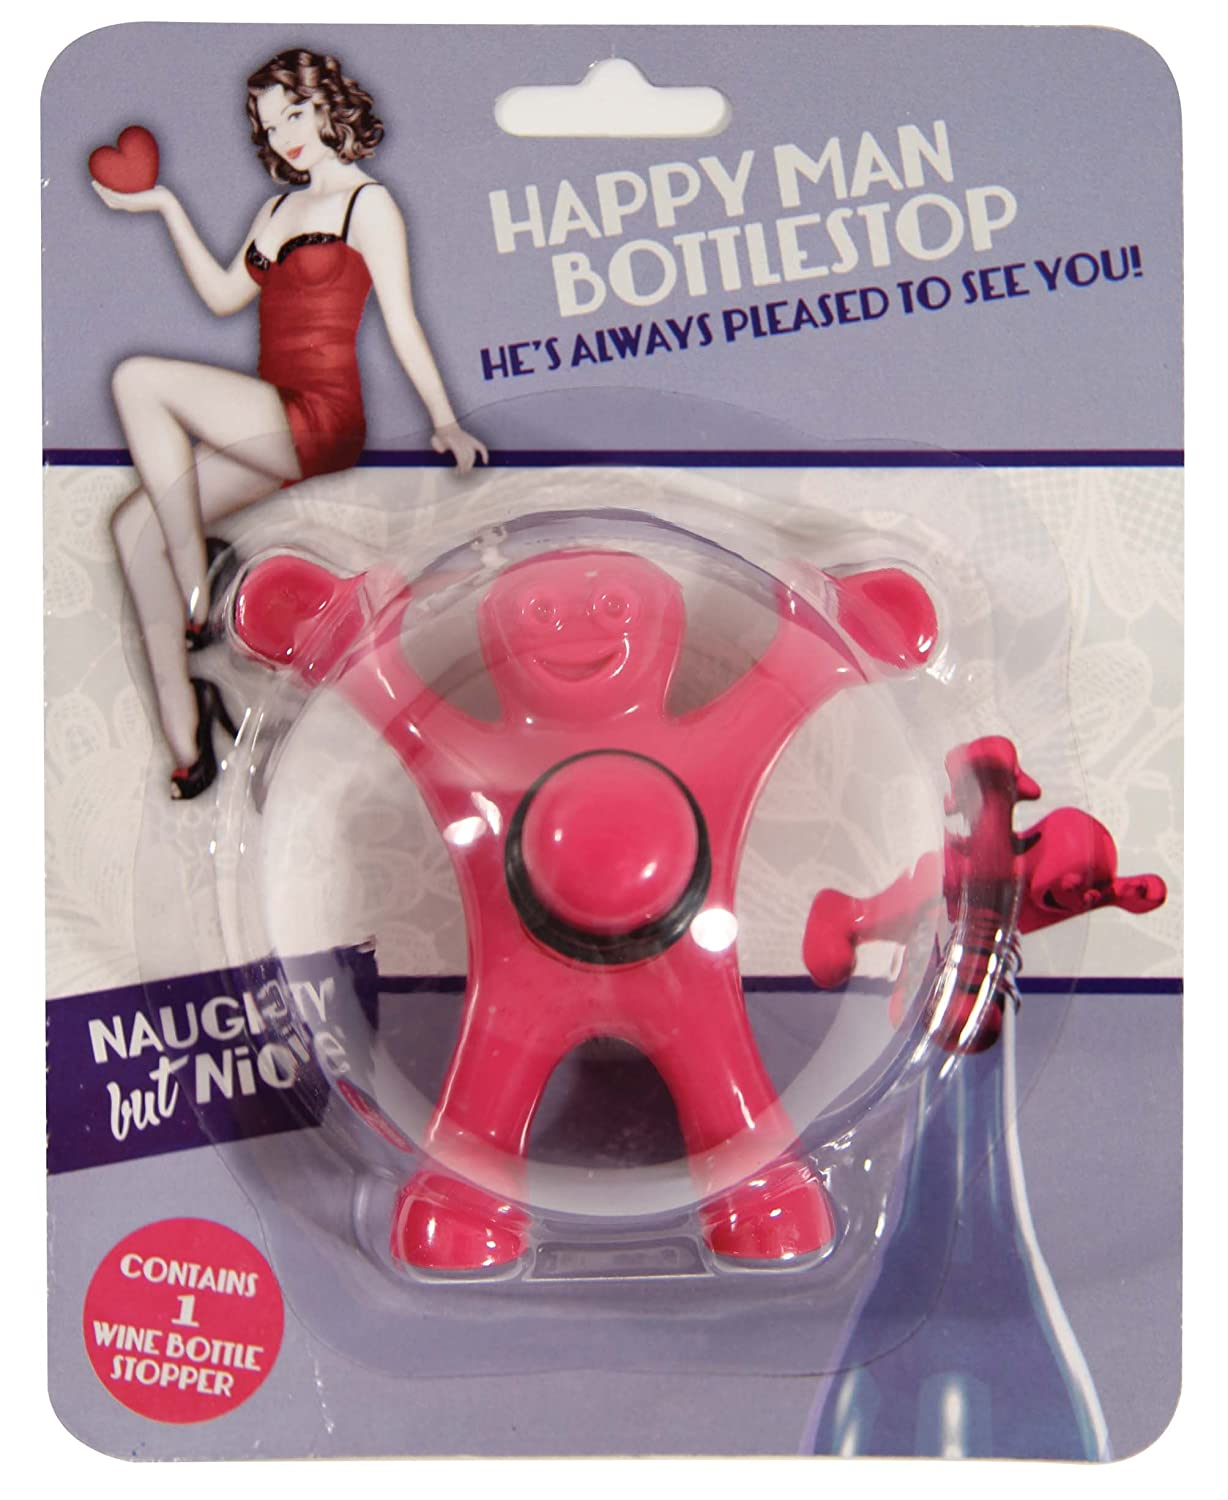 Amazon.com: Happy Man Bottle Stopper - Pink: Kitchen & Dining